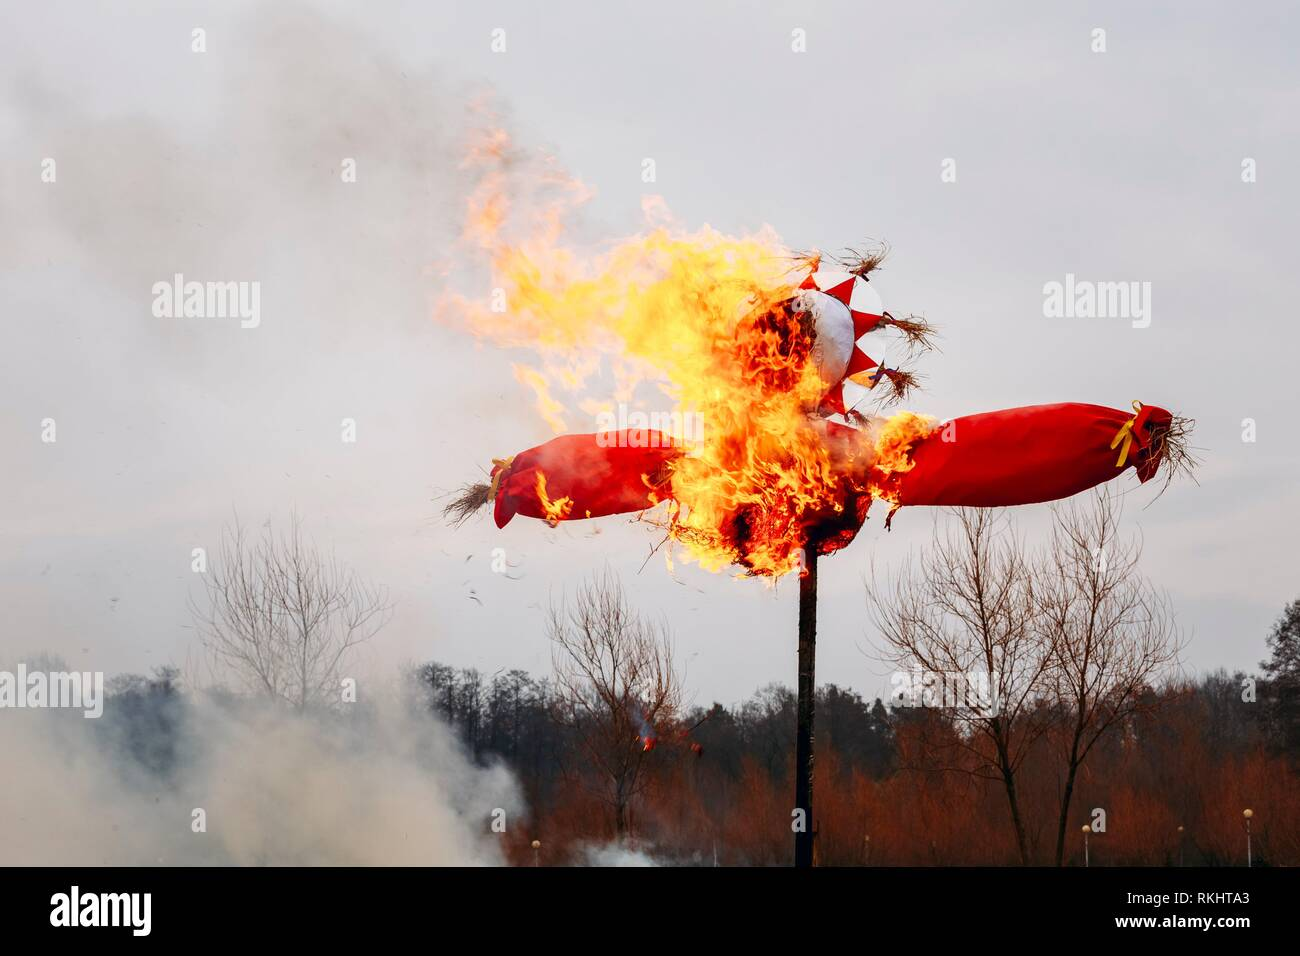 Burning effigies straw Maslenitsa in fire on the traditional holiday dedicated to the approach of spring - Slavic celebration Shrovetide. - Stock Image